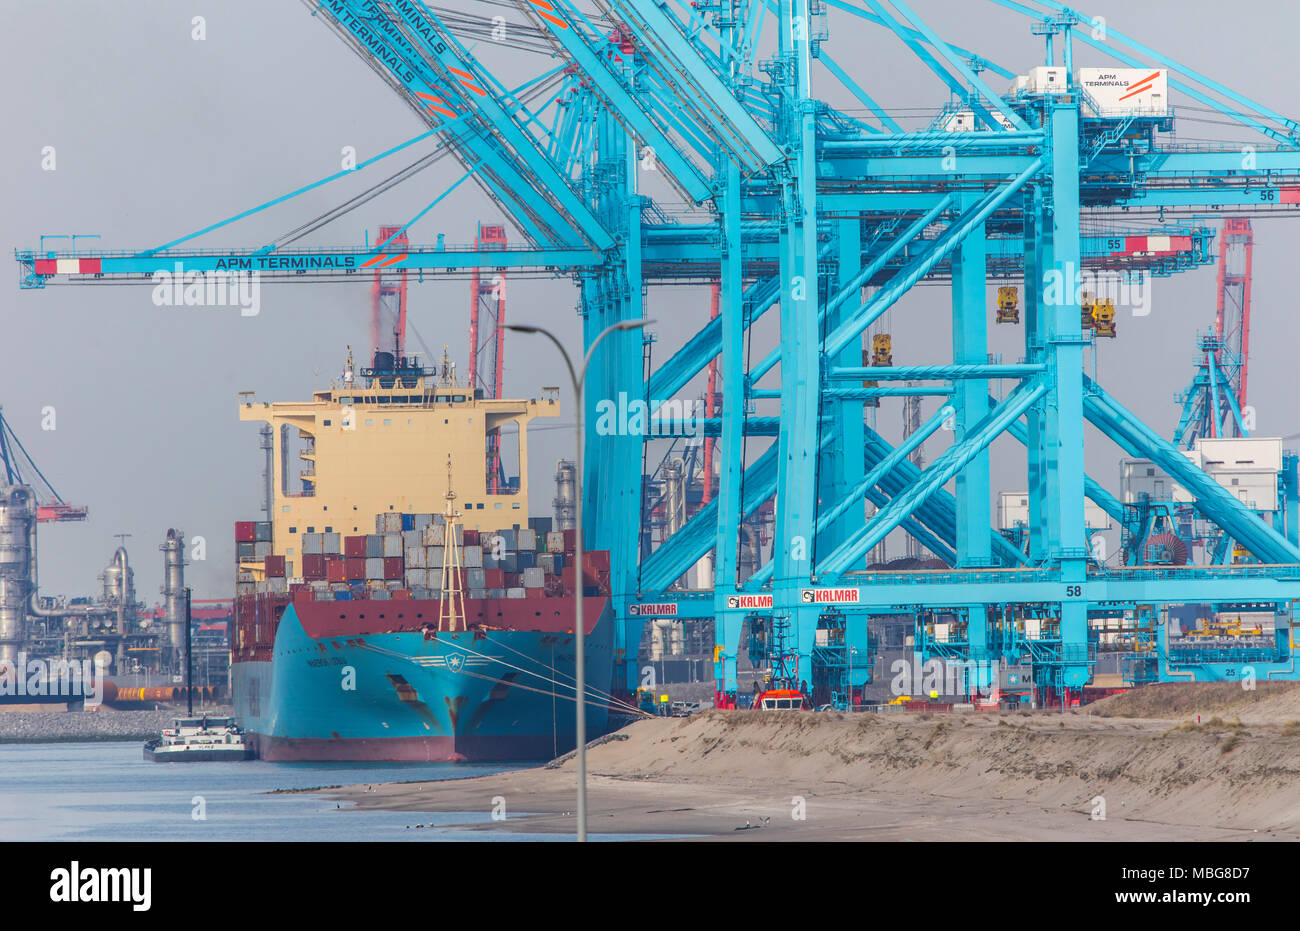 The seaport of Rotterdam, Netherlands, deep-sea port Maasvlakte 2, on an artificially created land area in front of the original coast, APM Container  - Stock Image